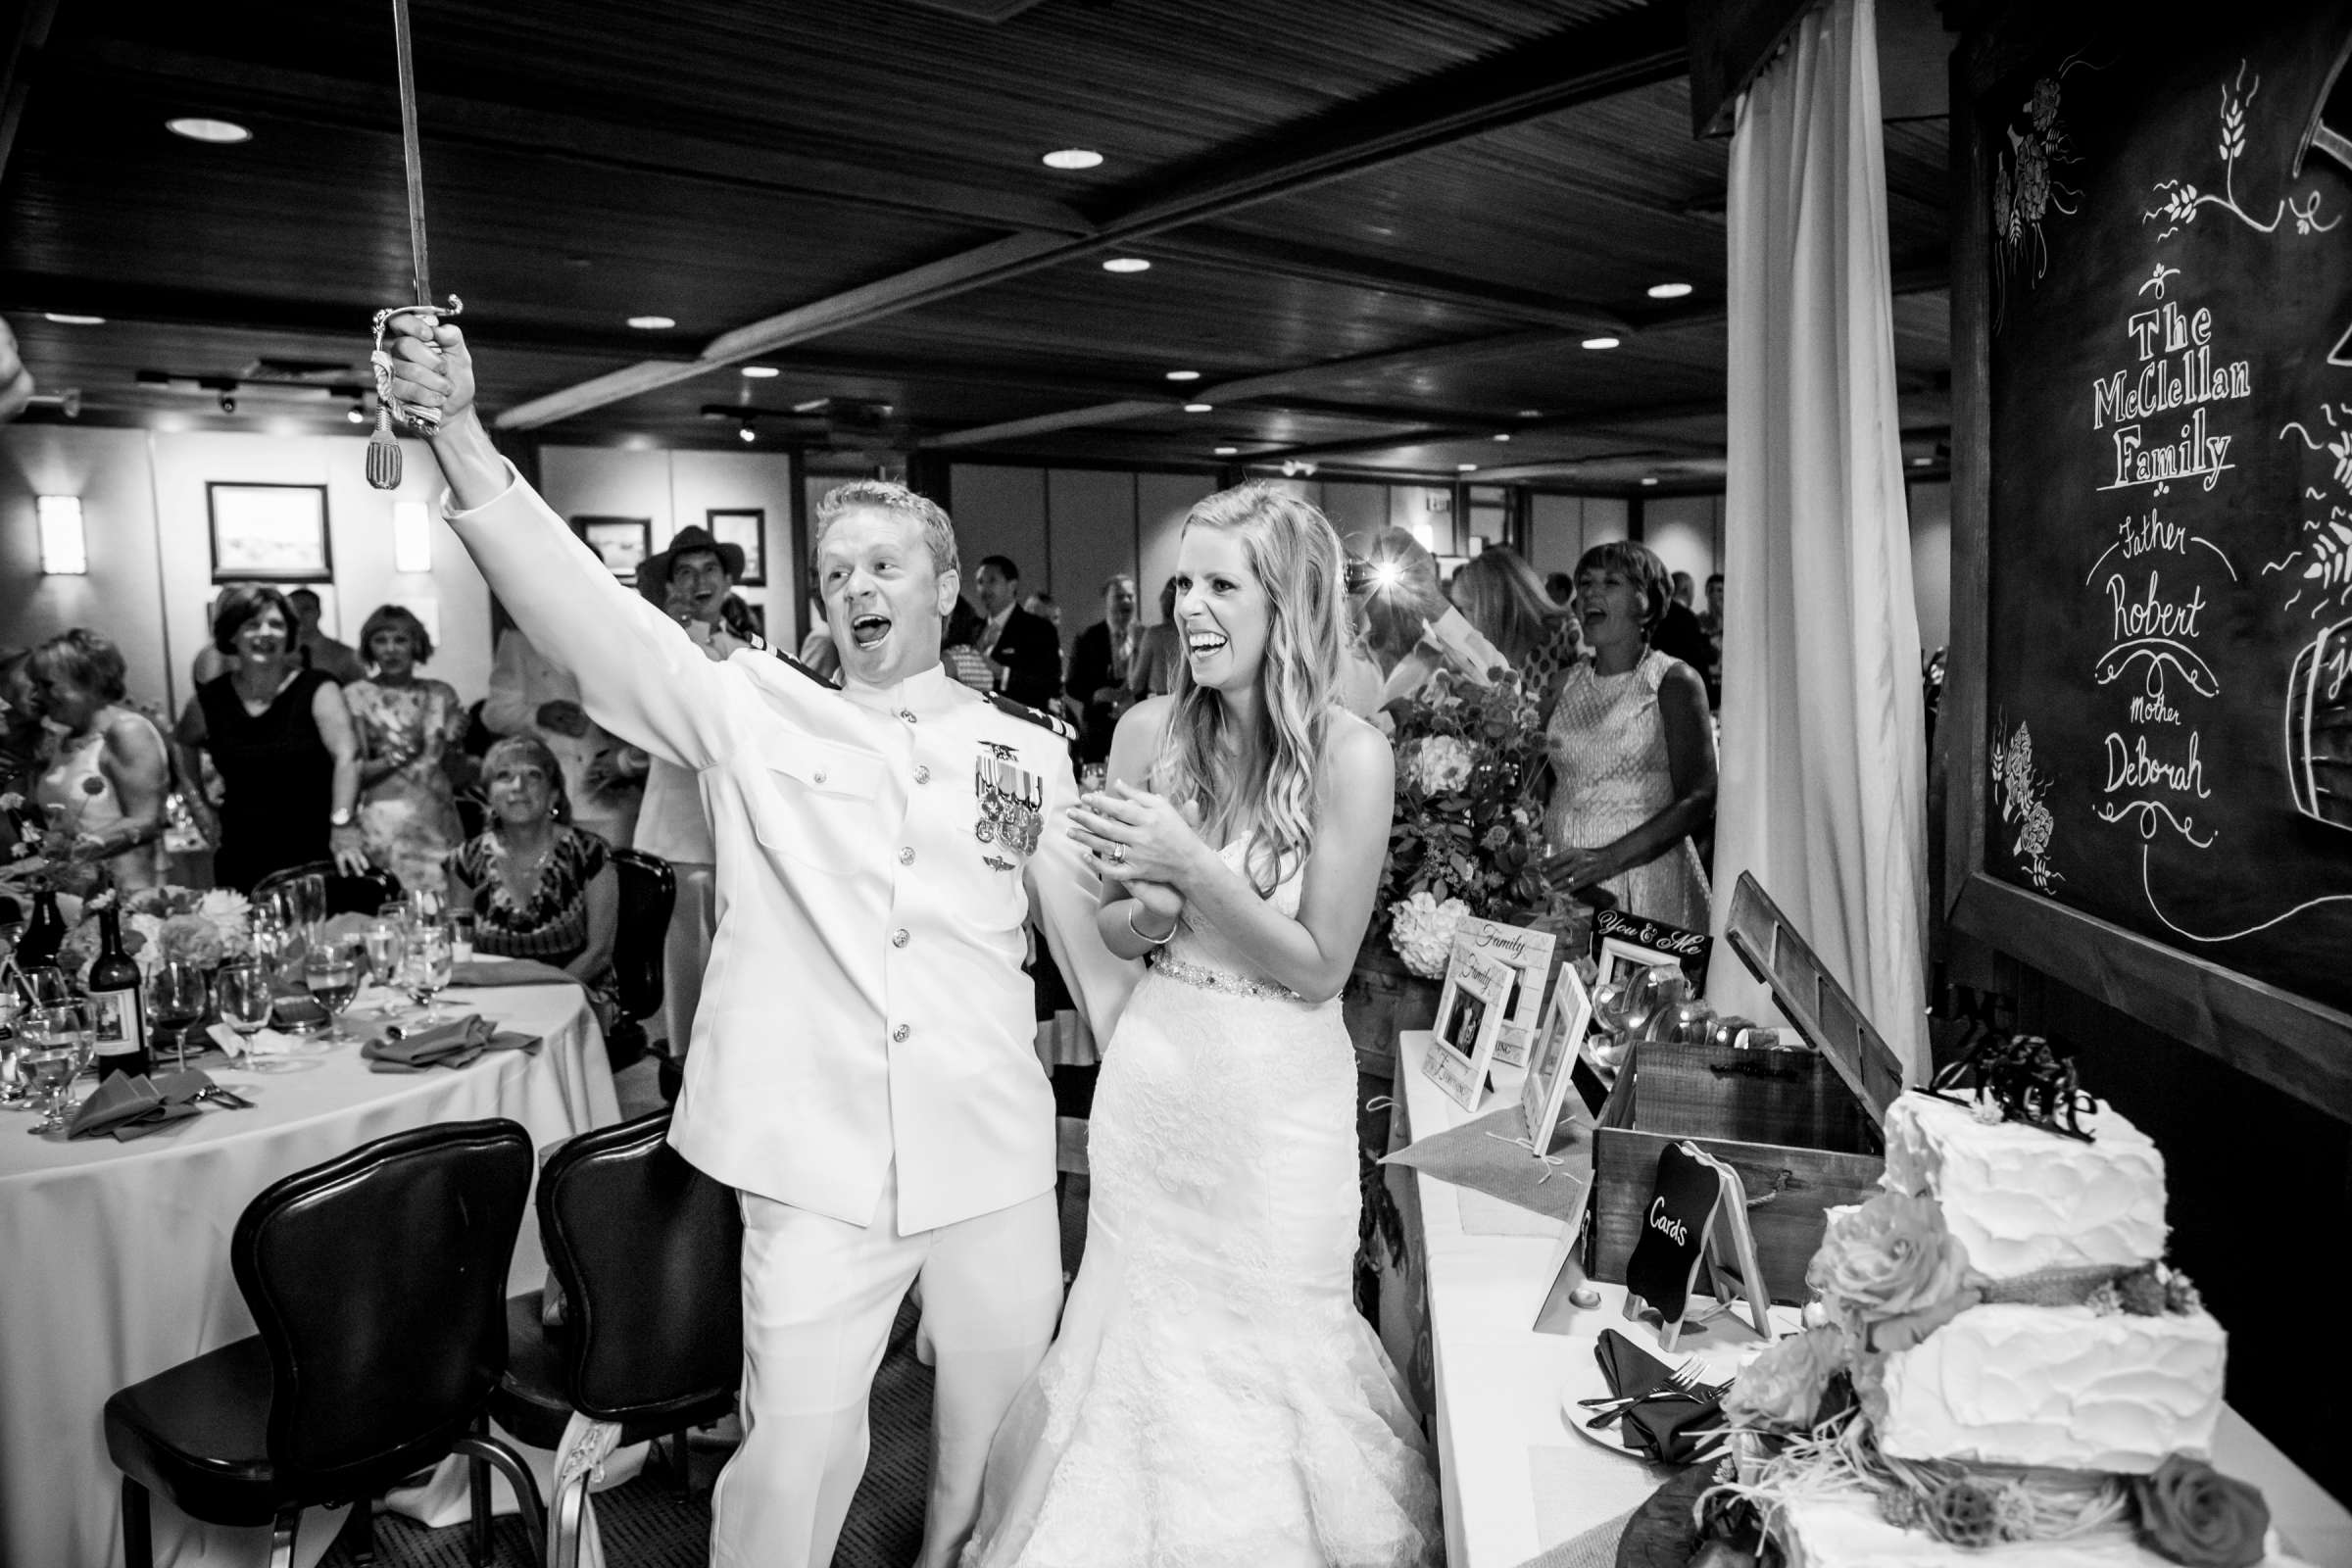 San Diego Yacht Club Wedding coordinated by Amy June Weddings & Events, Sara and Bill Wedding Photo #86 by True Photography